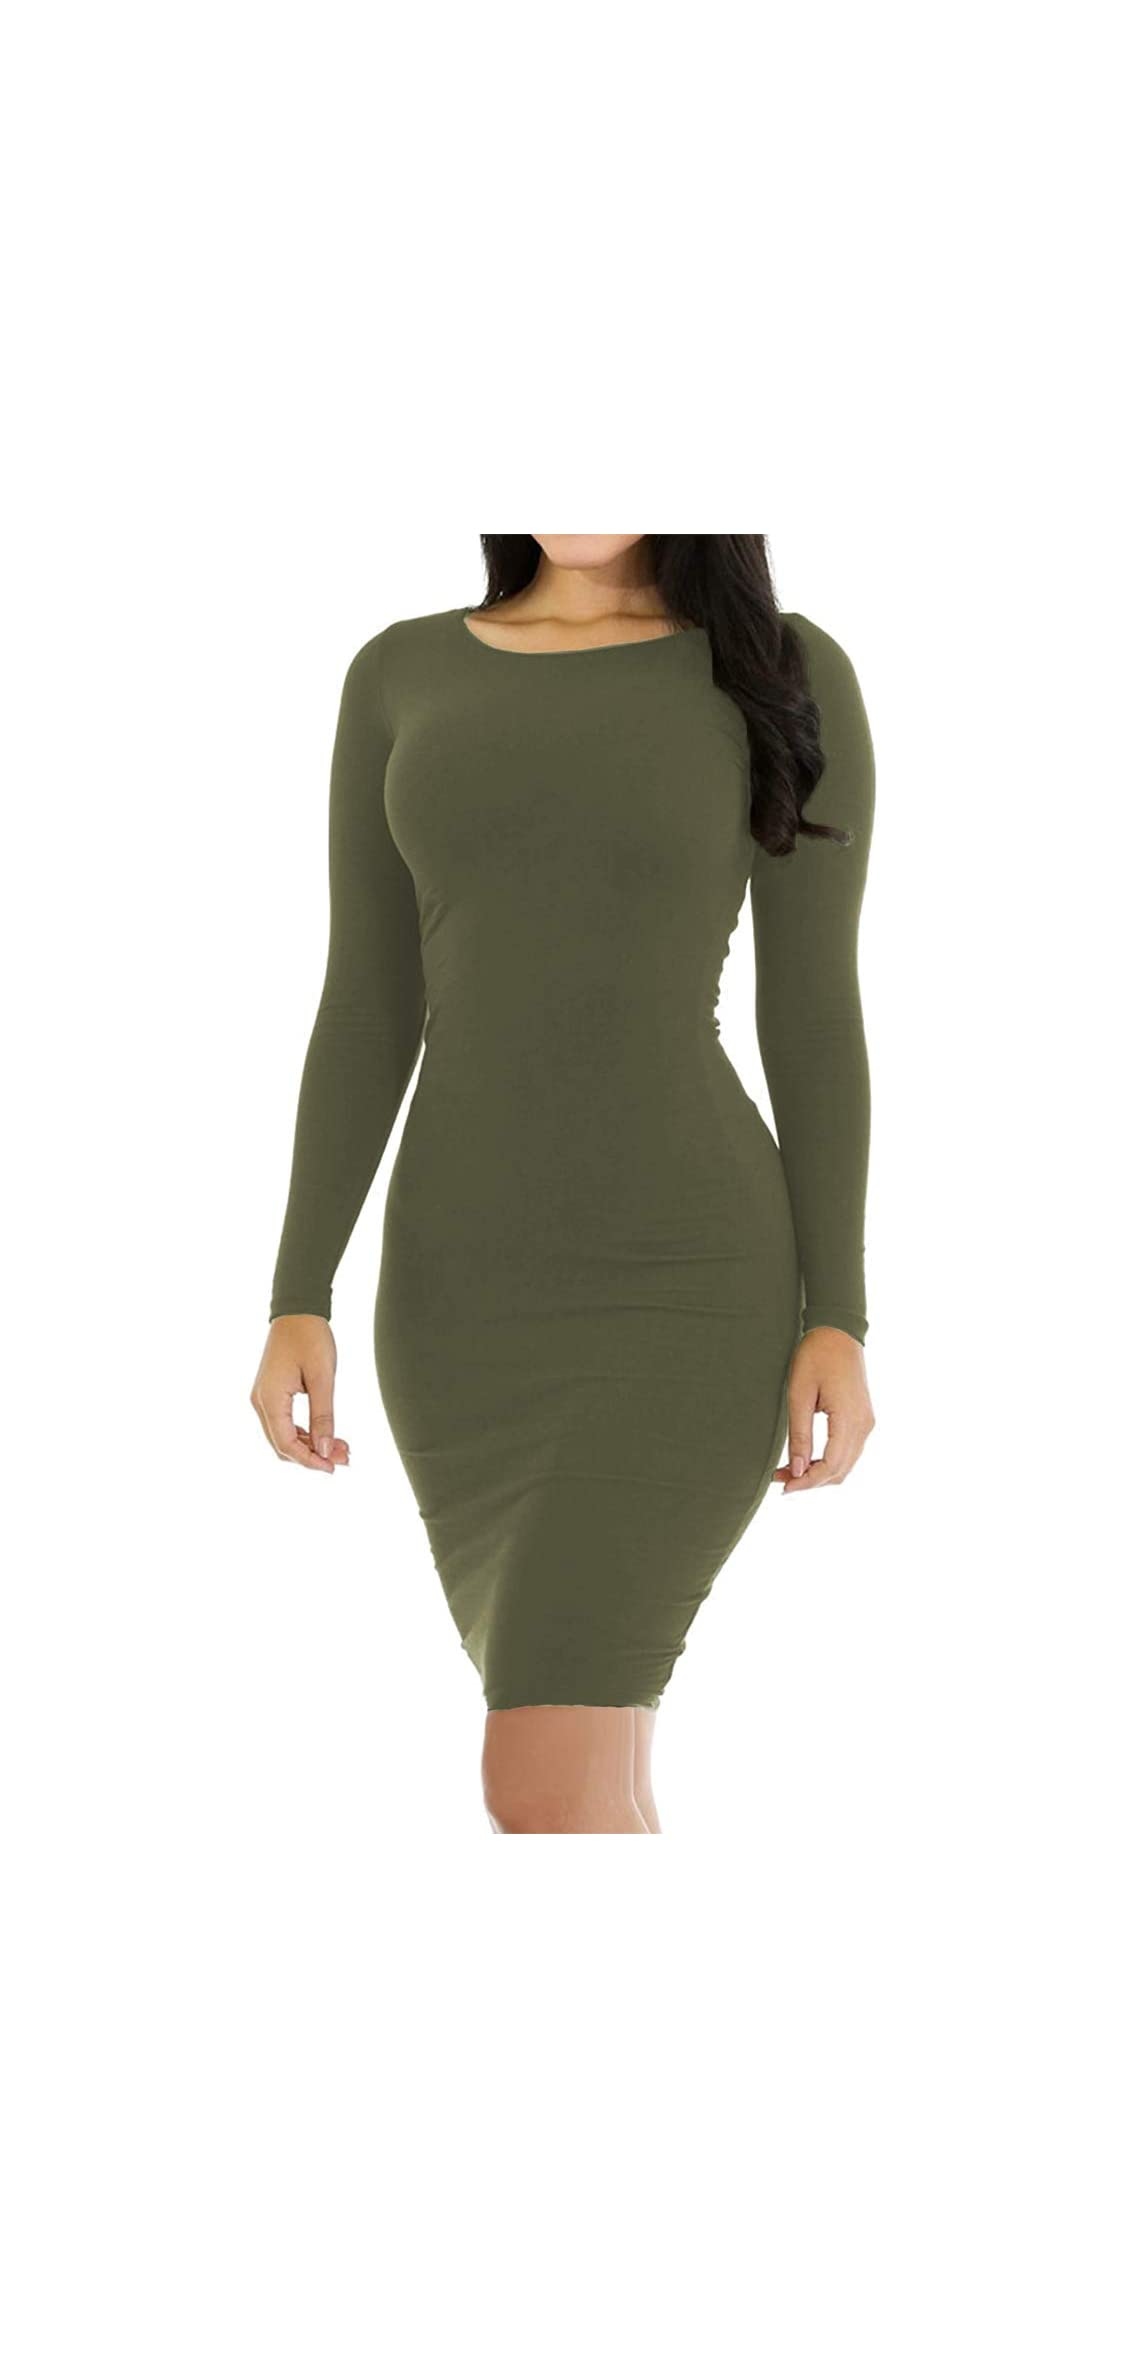 Women's Pencil Bodycon Dress Sexy Casual Long Sleeve Ruched Midi